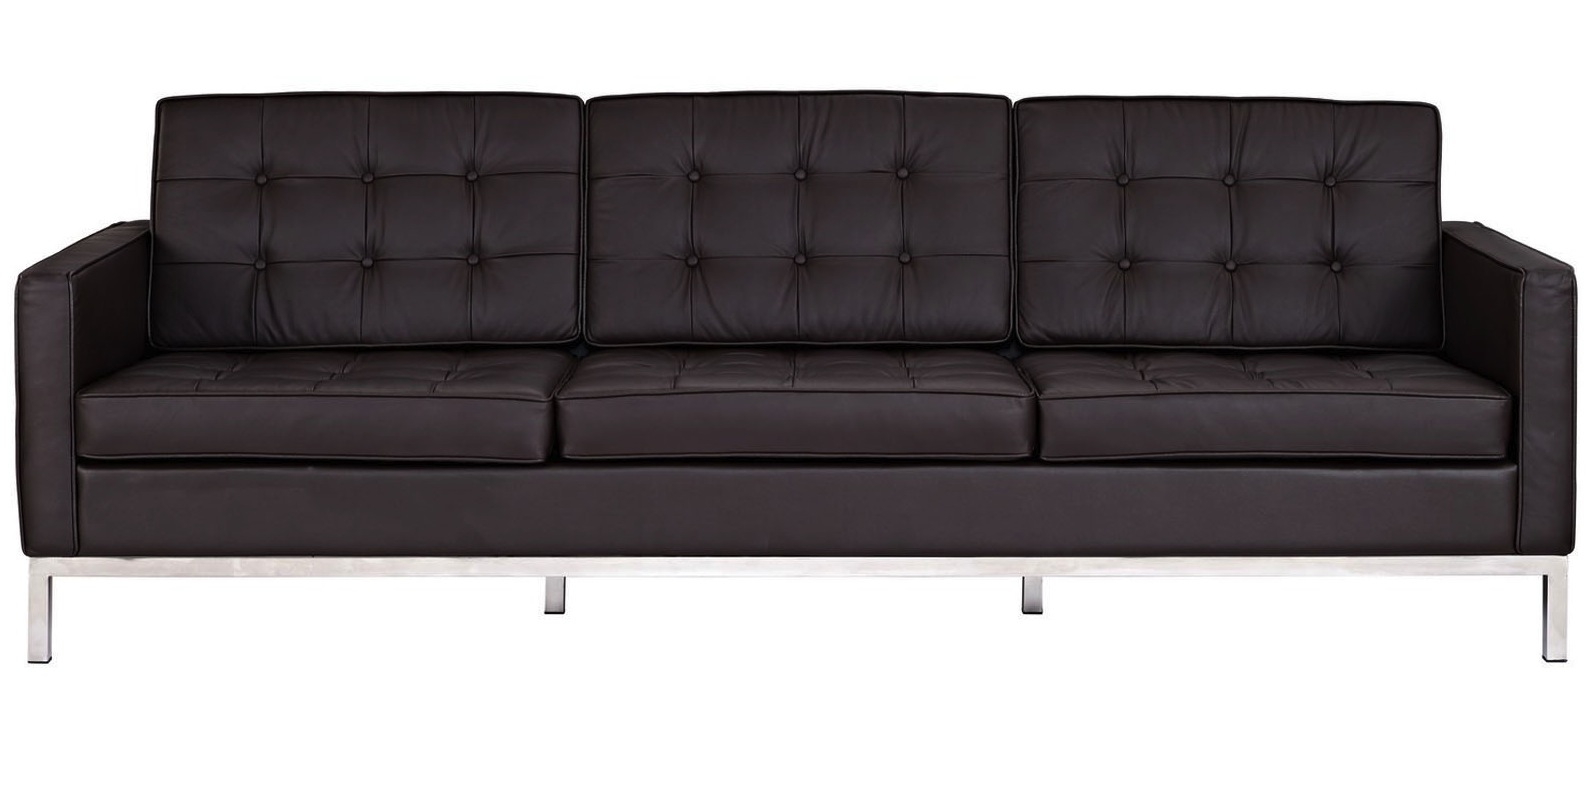 firenze sofa clearance stores glasgow florence three seater thesofa